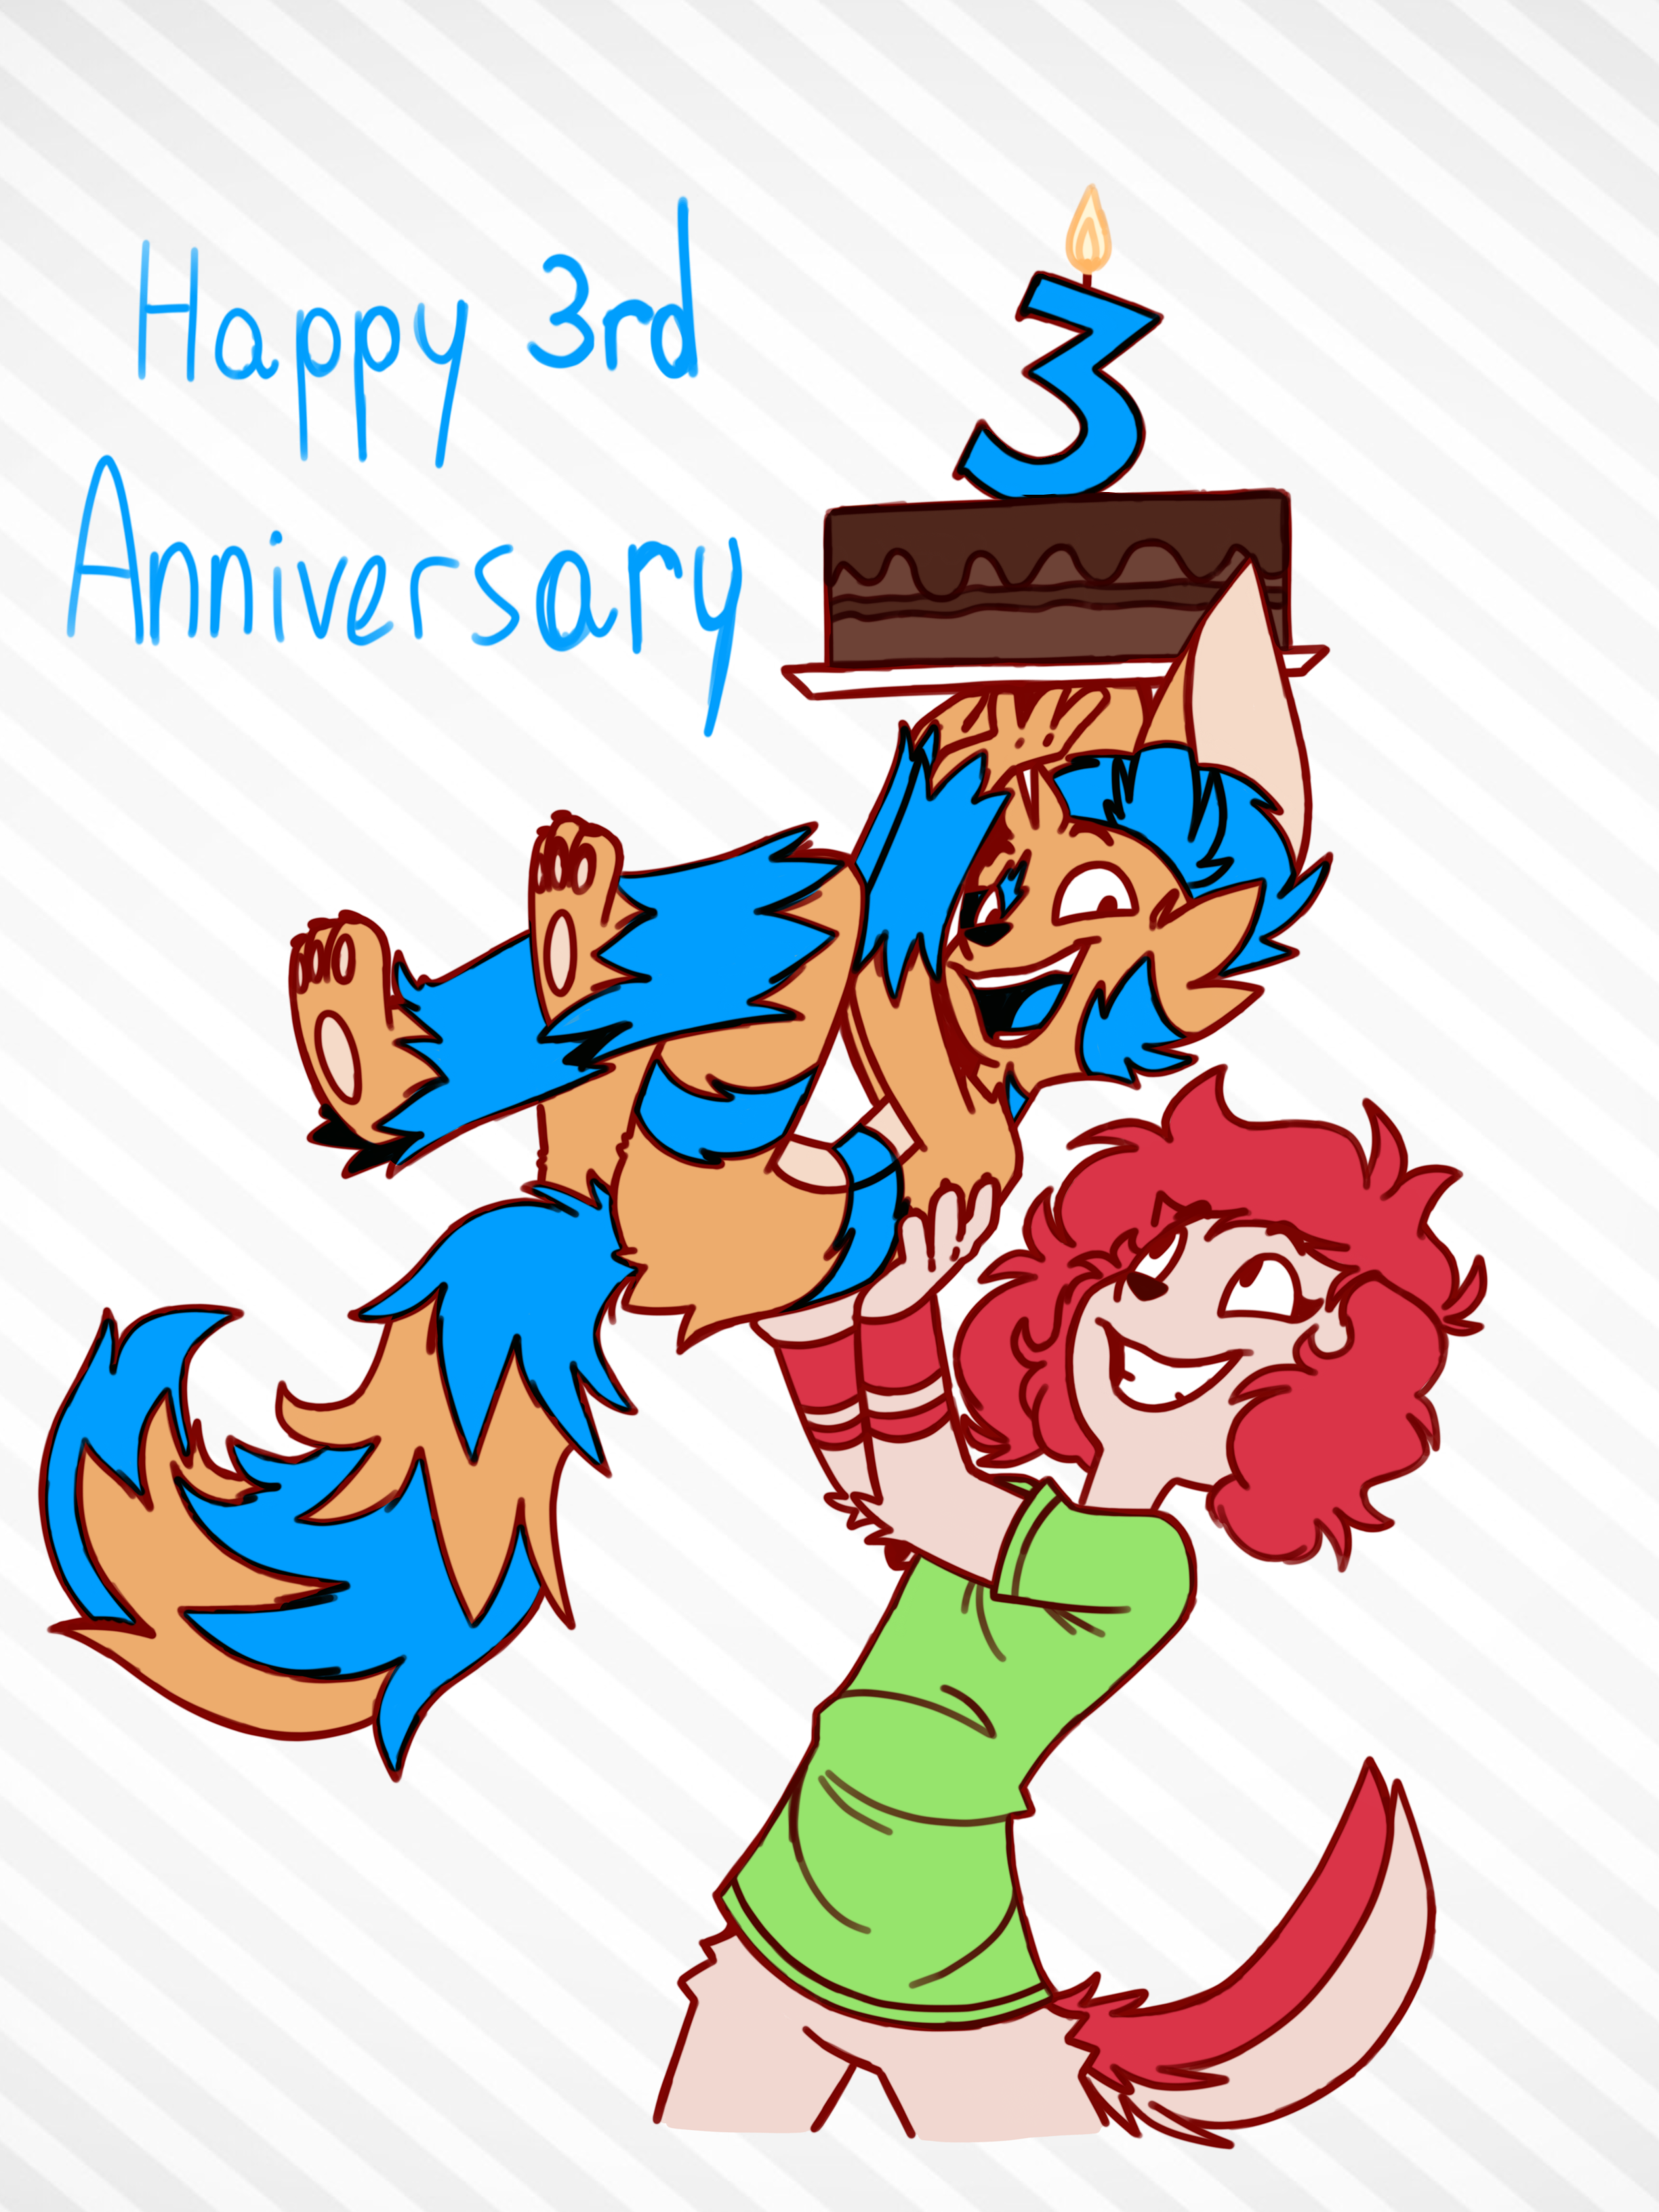 Happy 3rd anniversary!!